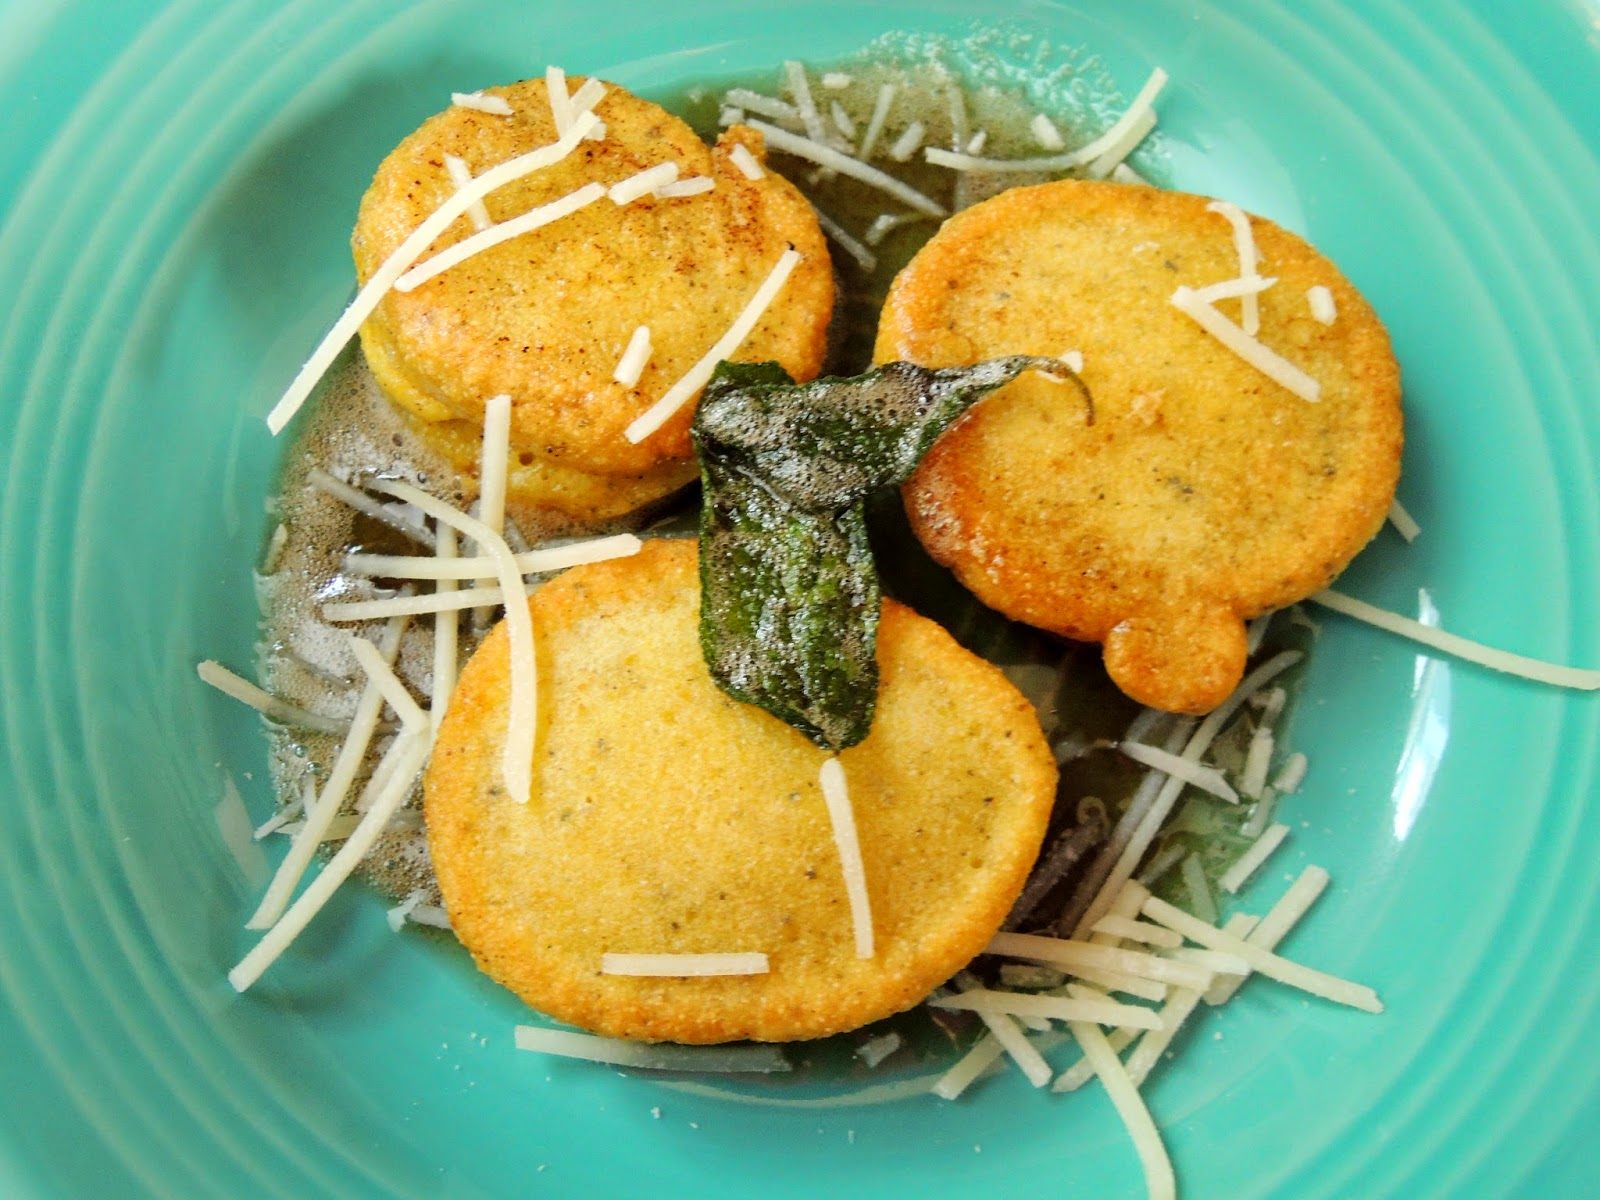 Fried semolina sage dumplings with brown butter and parmesan